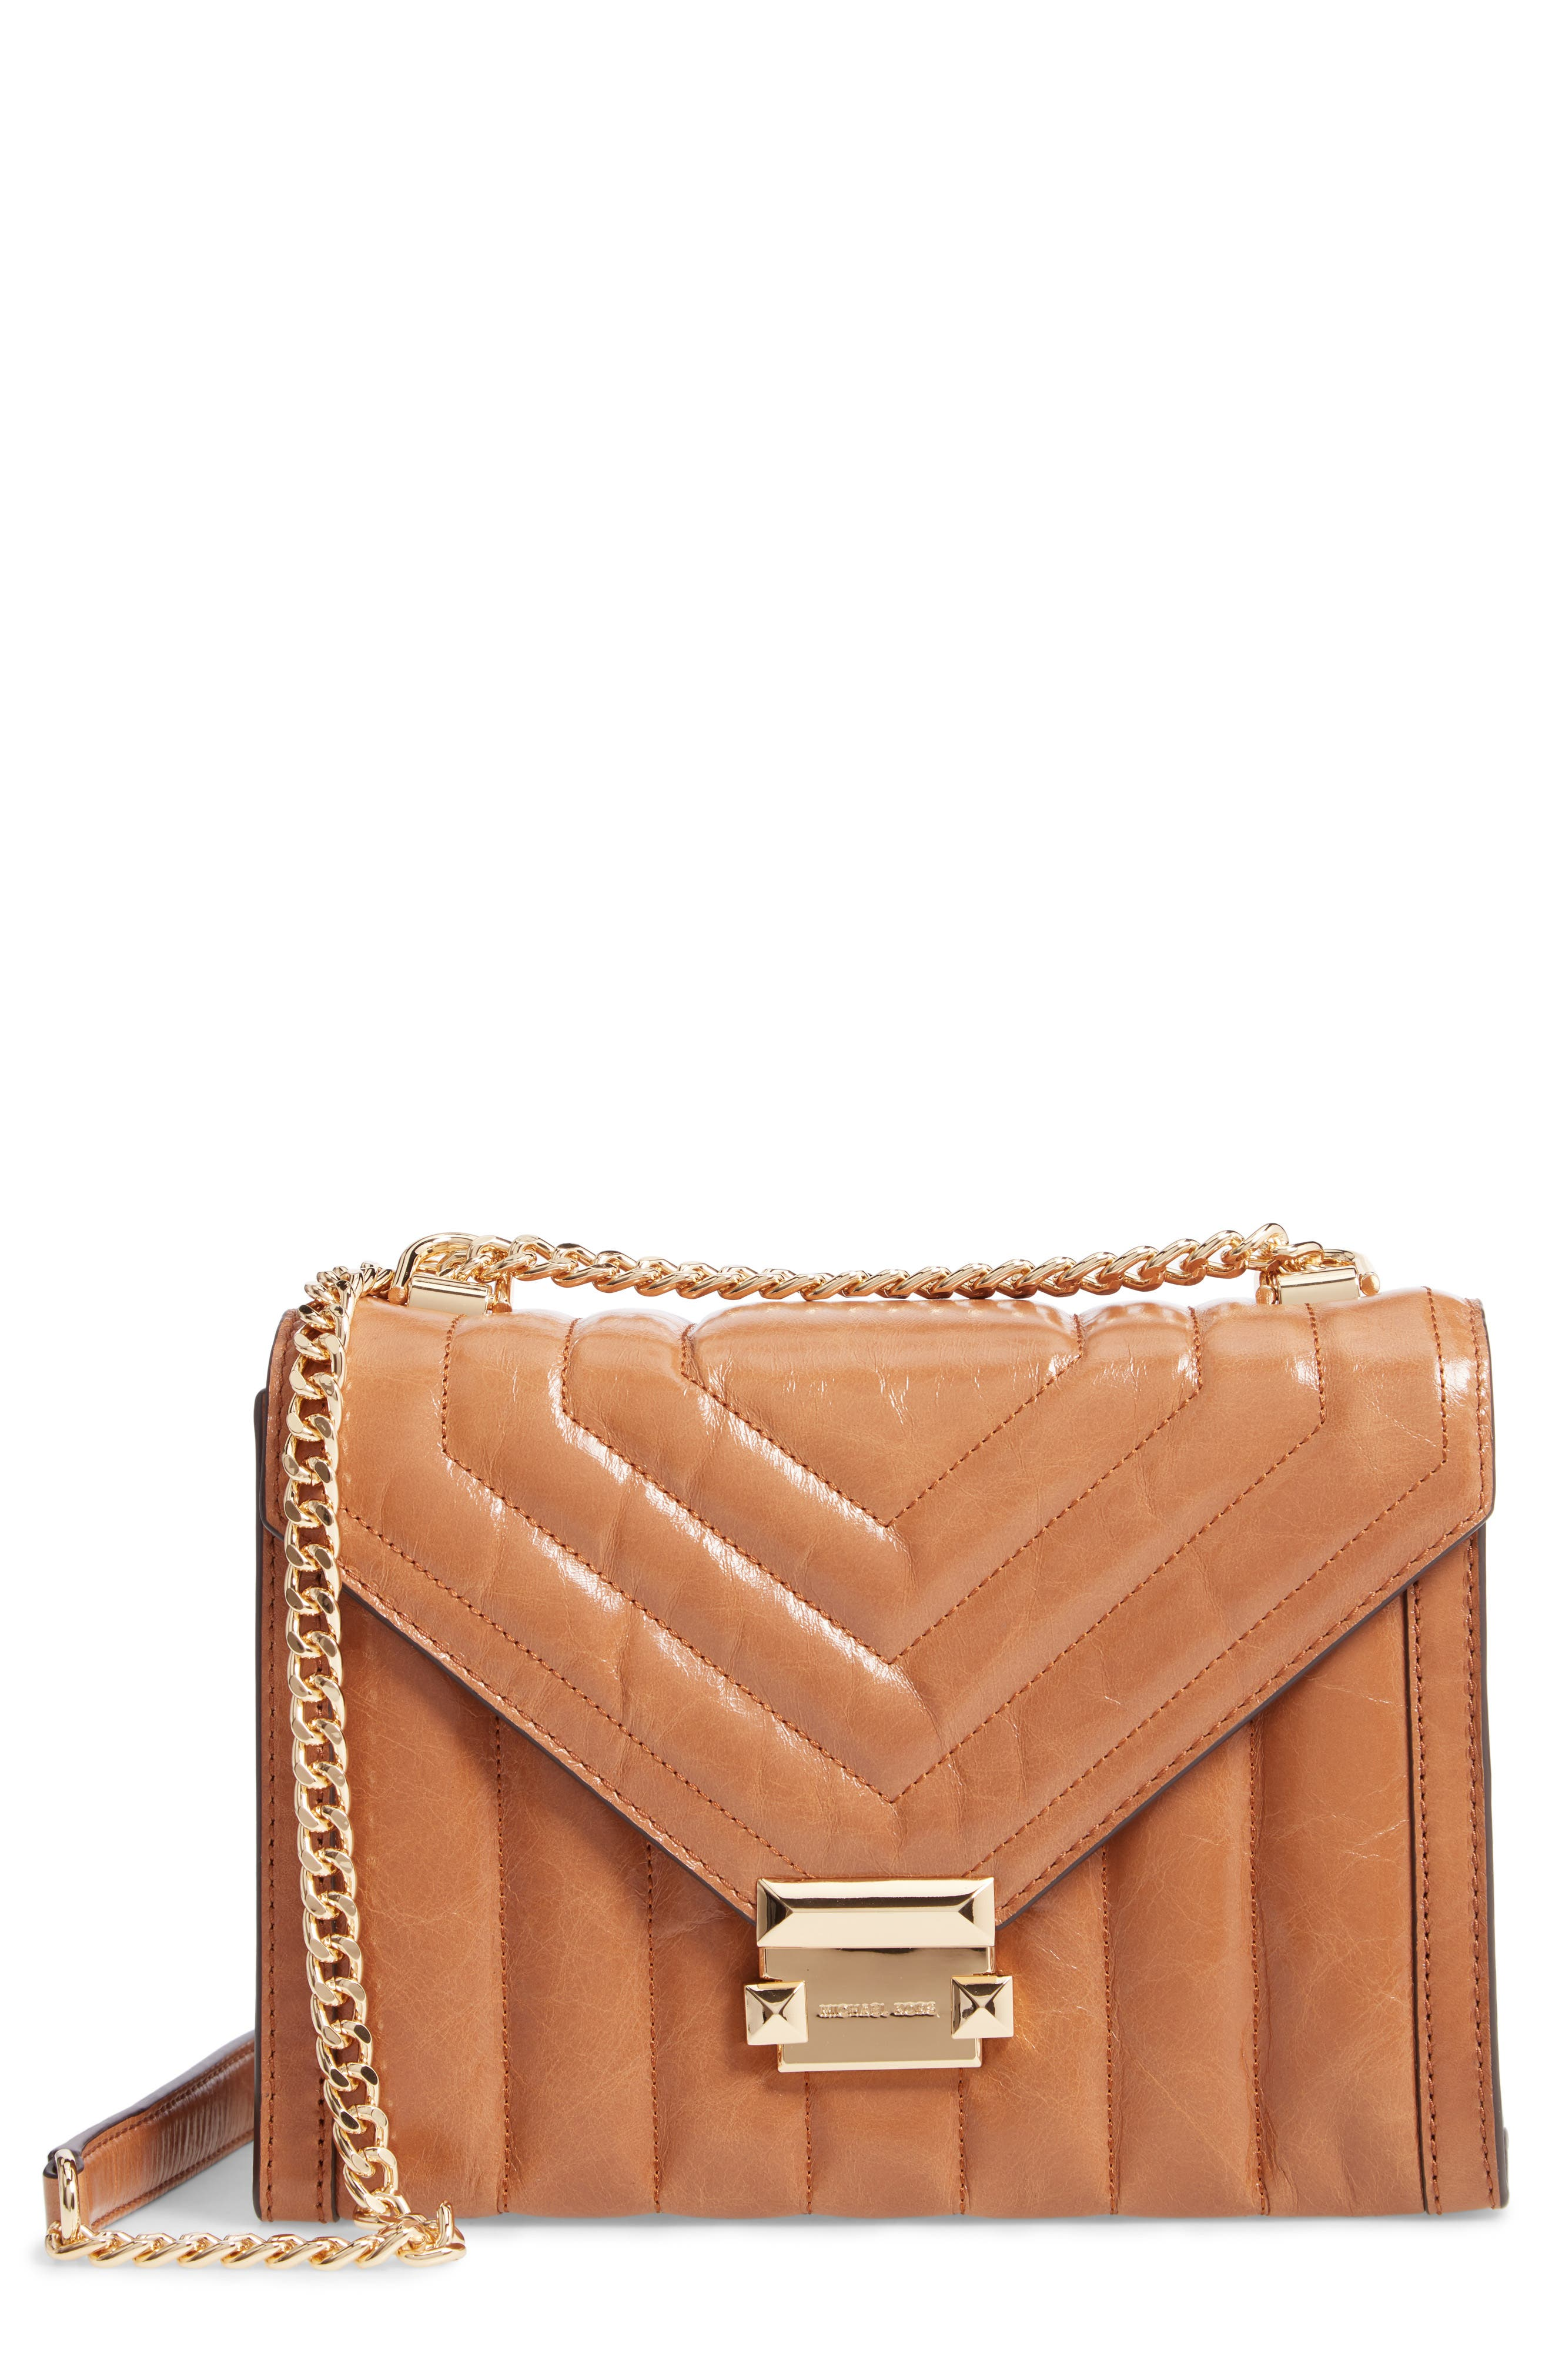 Large Quilted Leather Shoulder Bag - Brown in Acorn